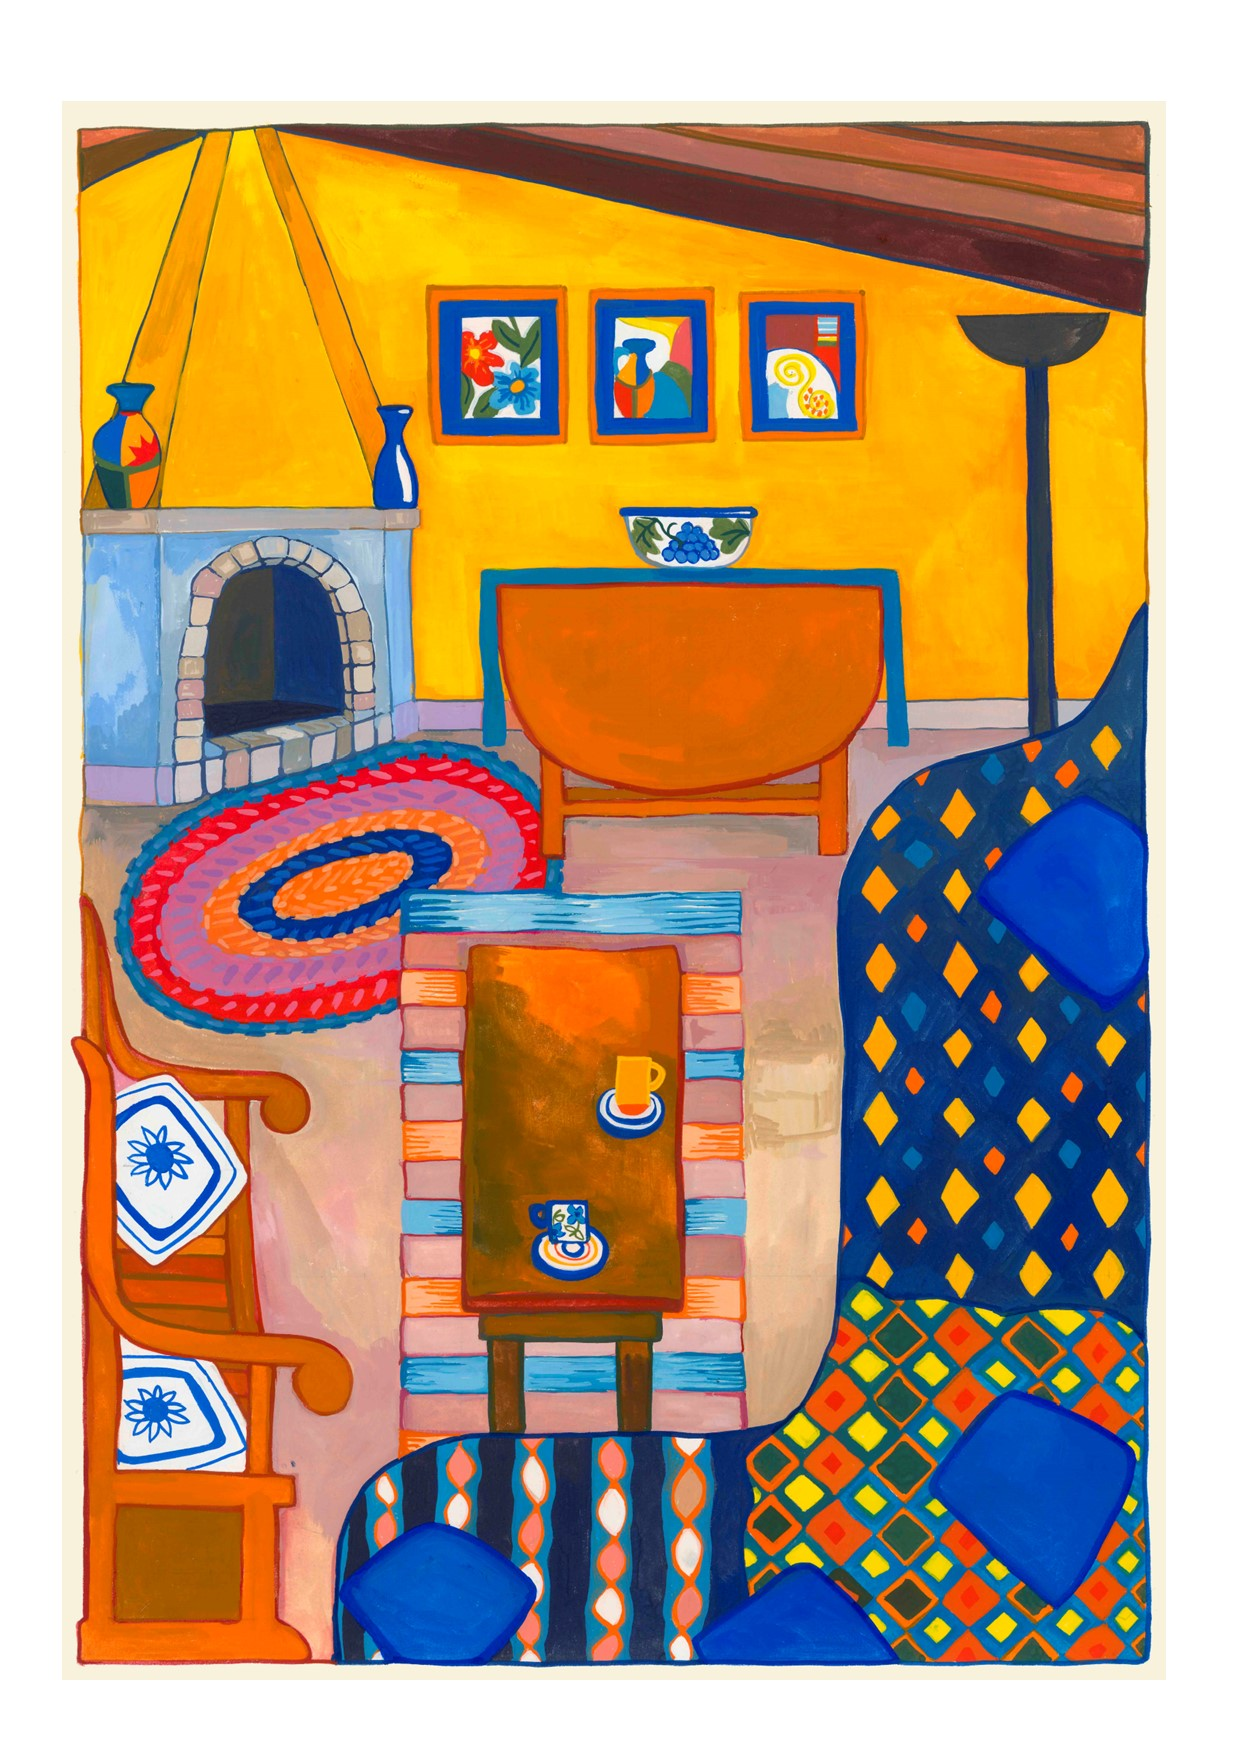 Painting of Yellow Room